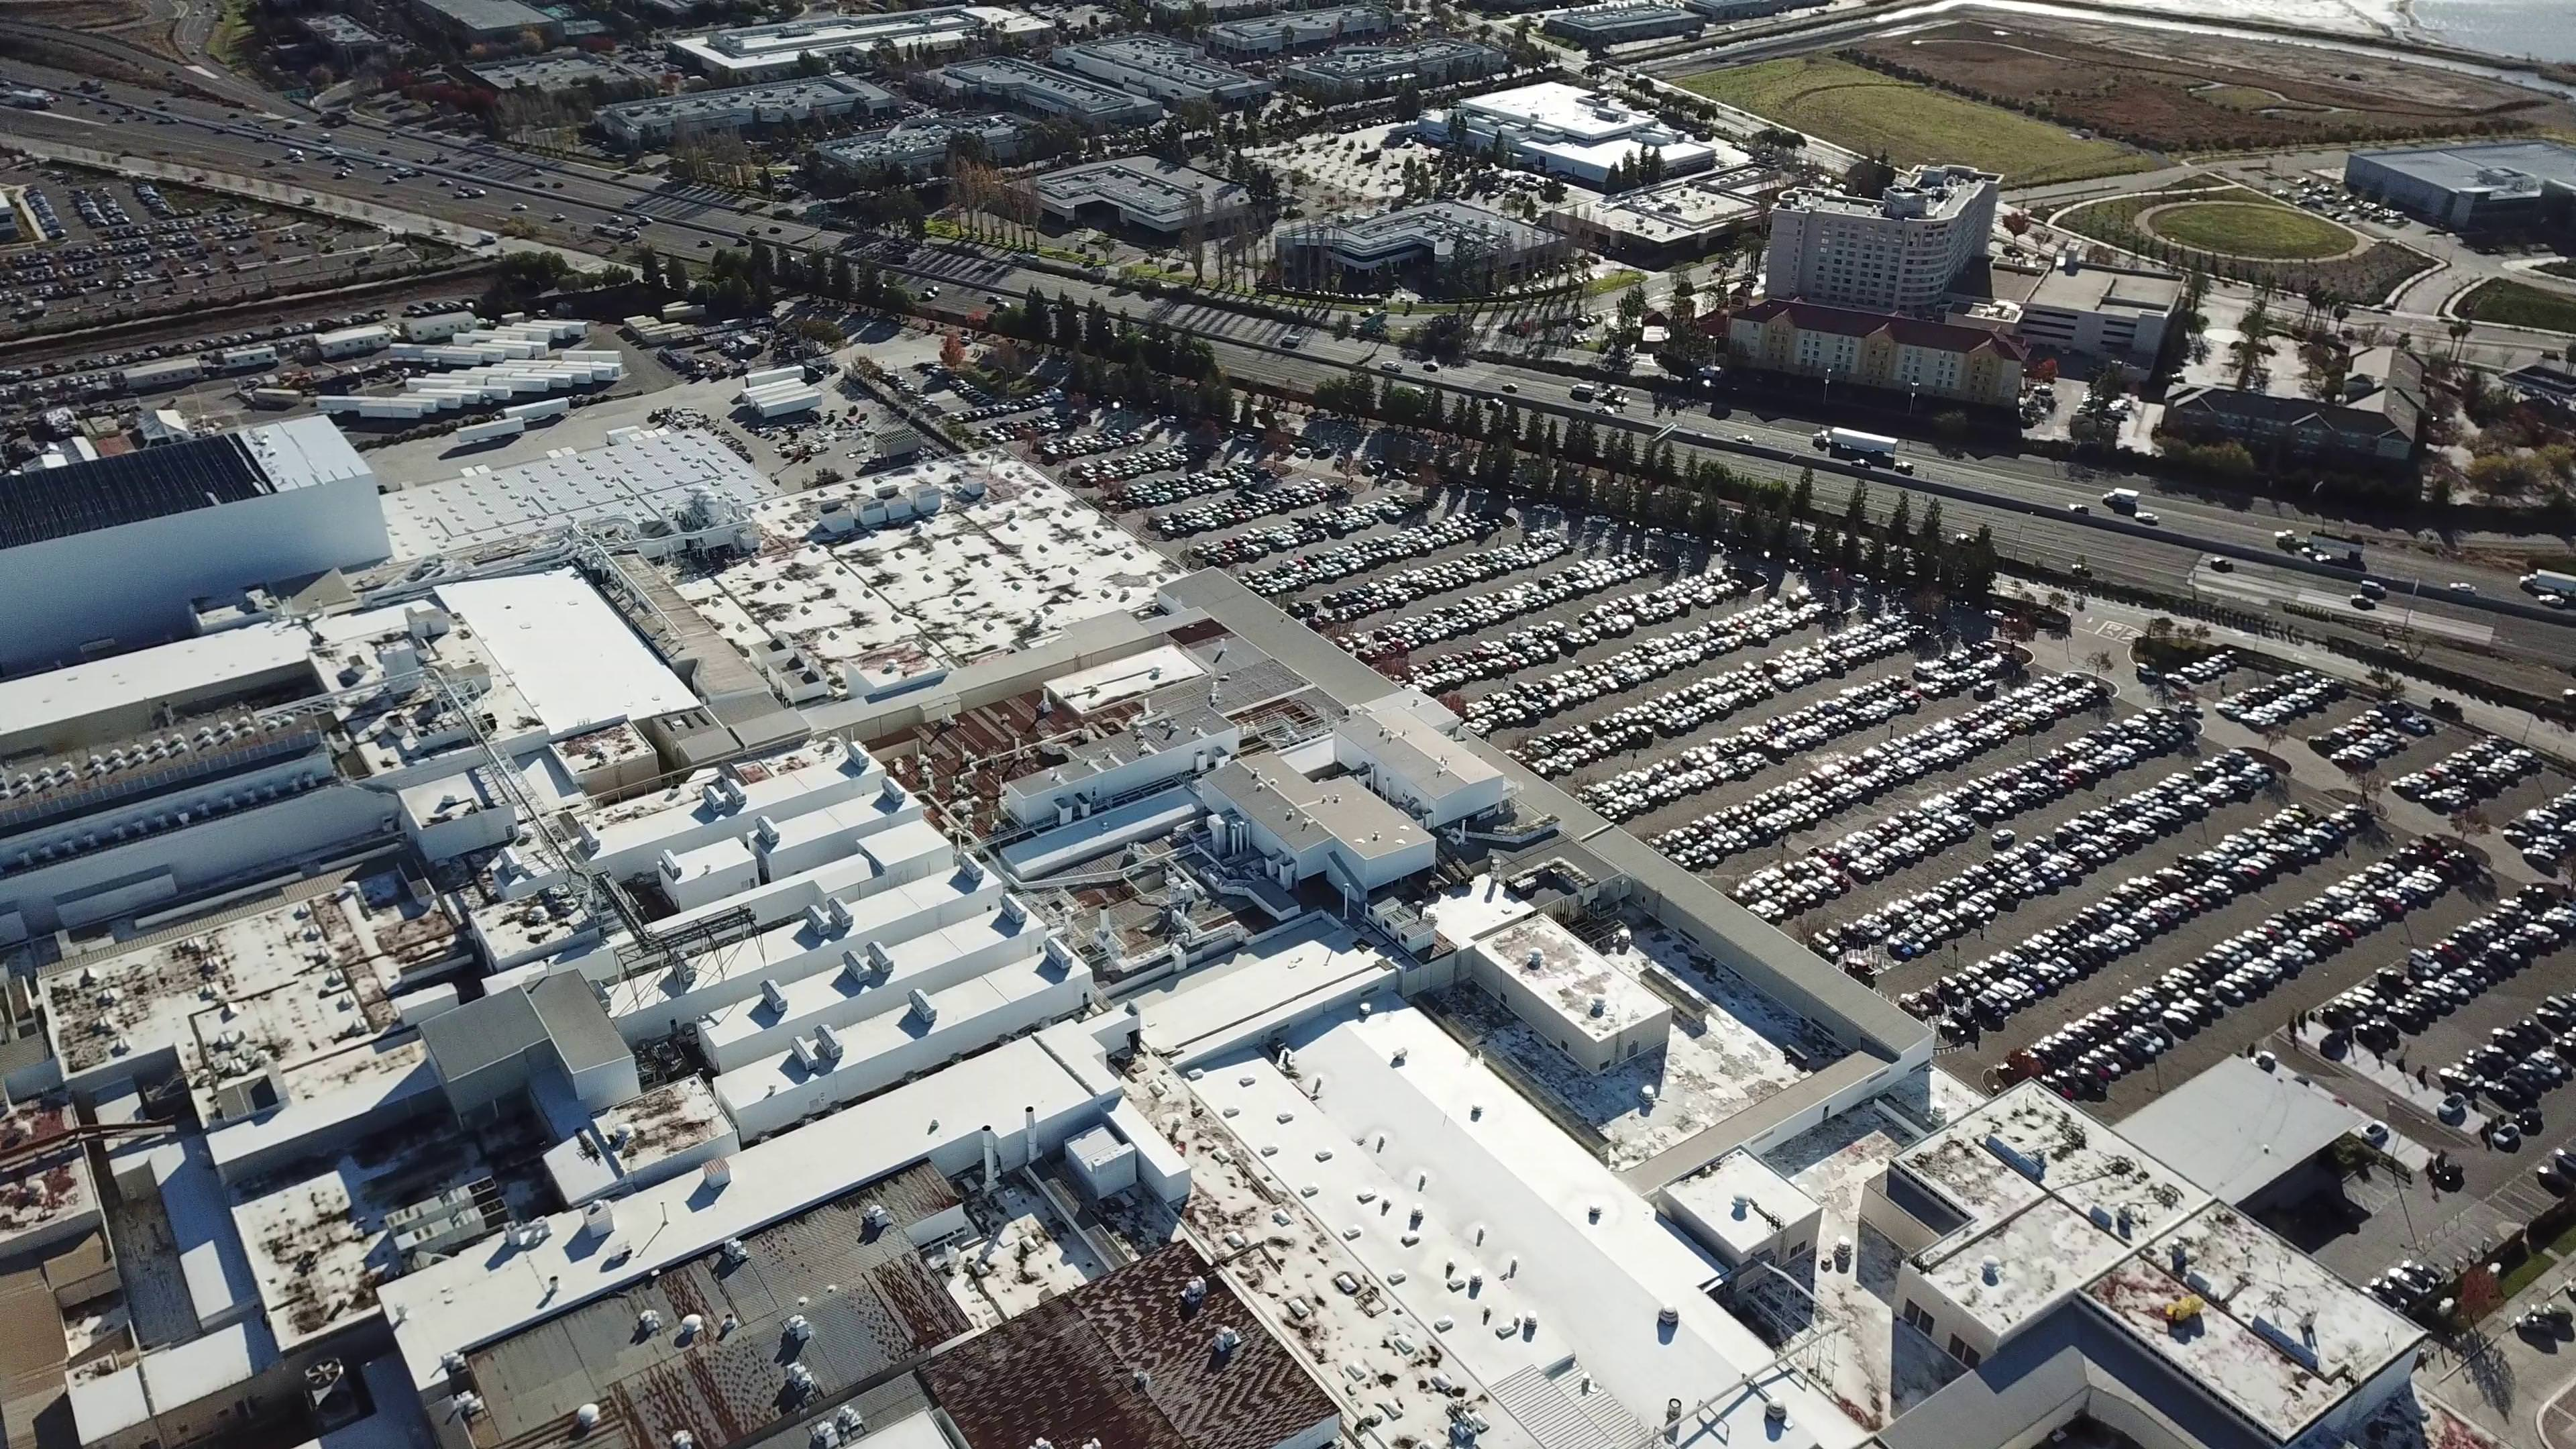 tesla-model-3-inventory-fremont-factory-drone-aerial-3